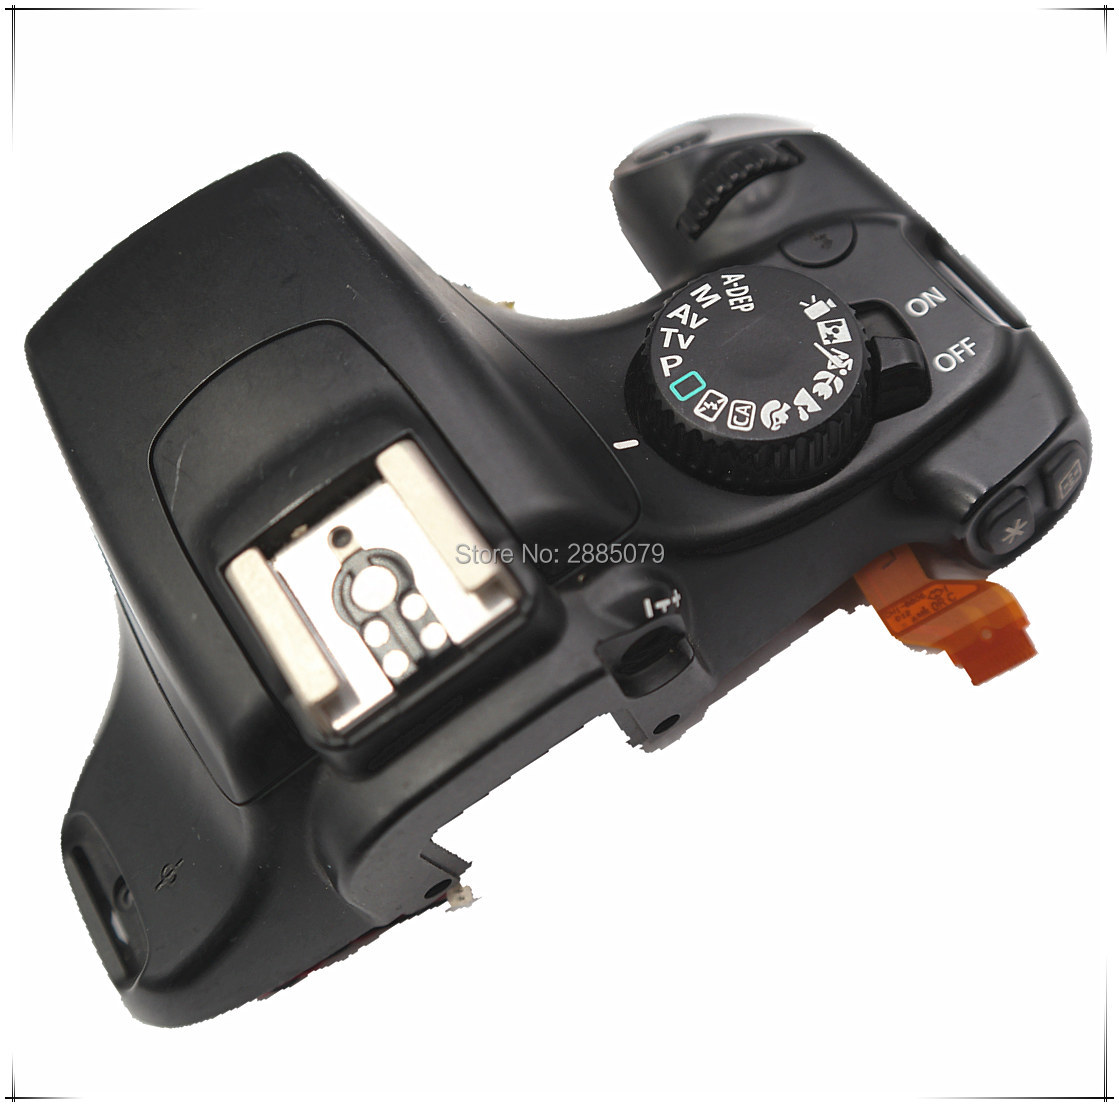 Original Top Cover Flash Shell For Canon FOR EOS 1100D FOR EOS Rebel T3 FOR EOS Kiss X50